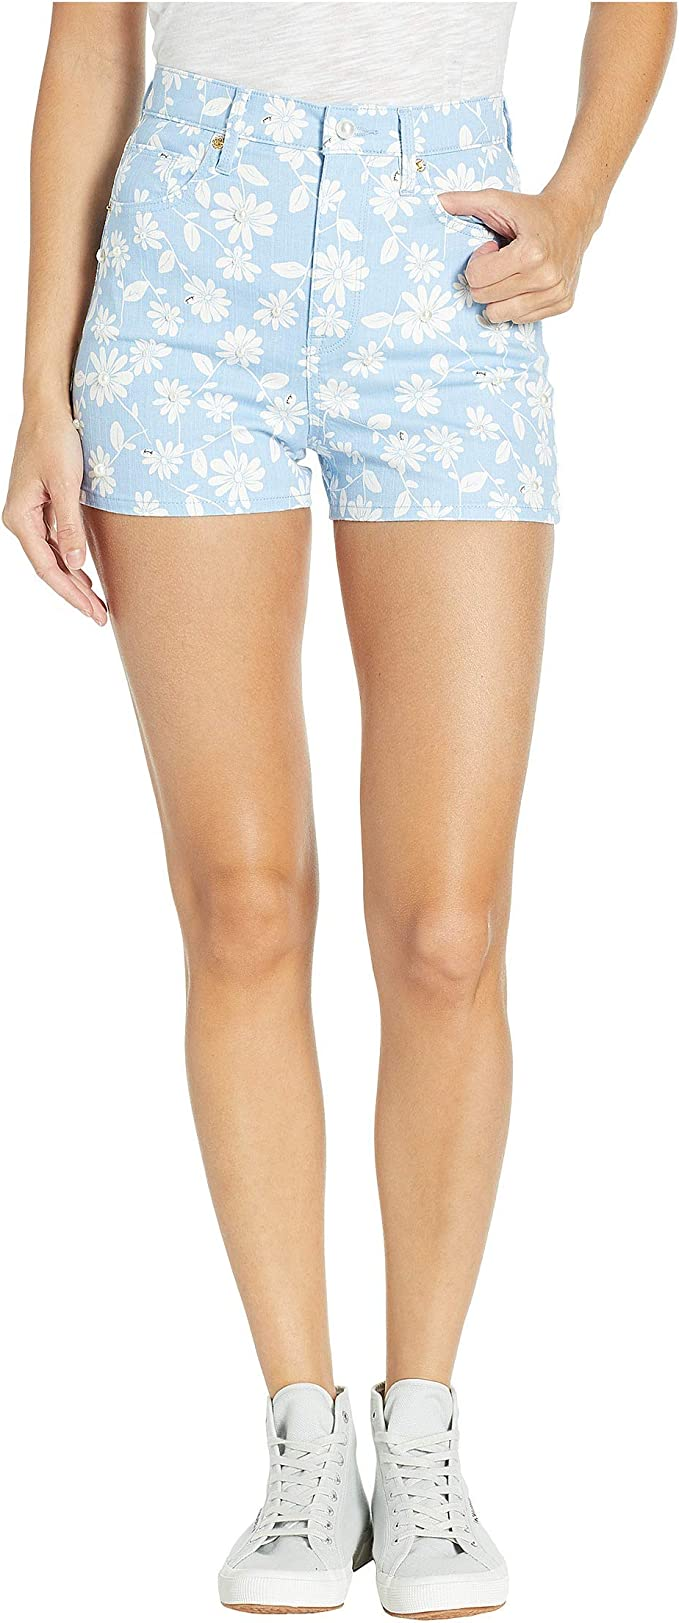 new arrival how to buy promo codes Amazon.com: Juicy Couture Women's Denim Pearl Embellished Shorts ...